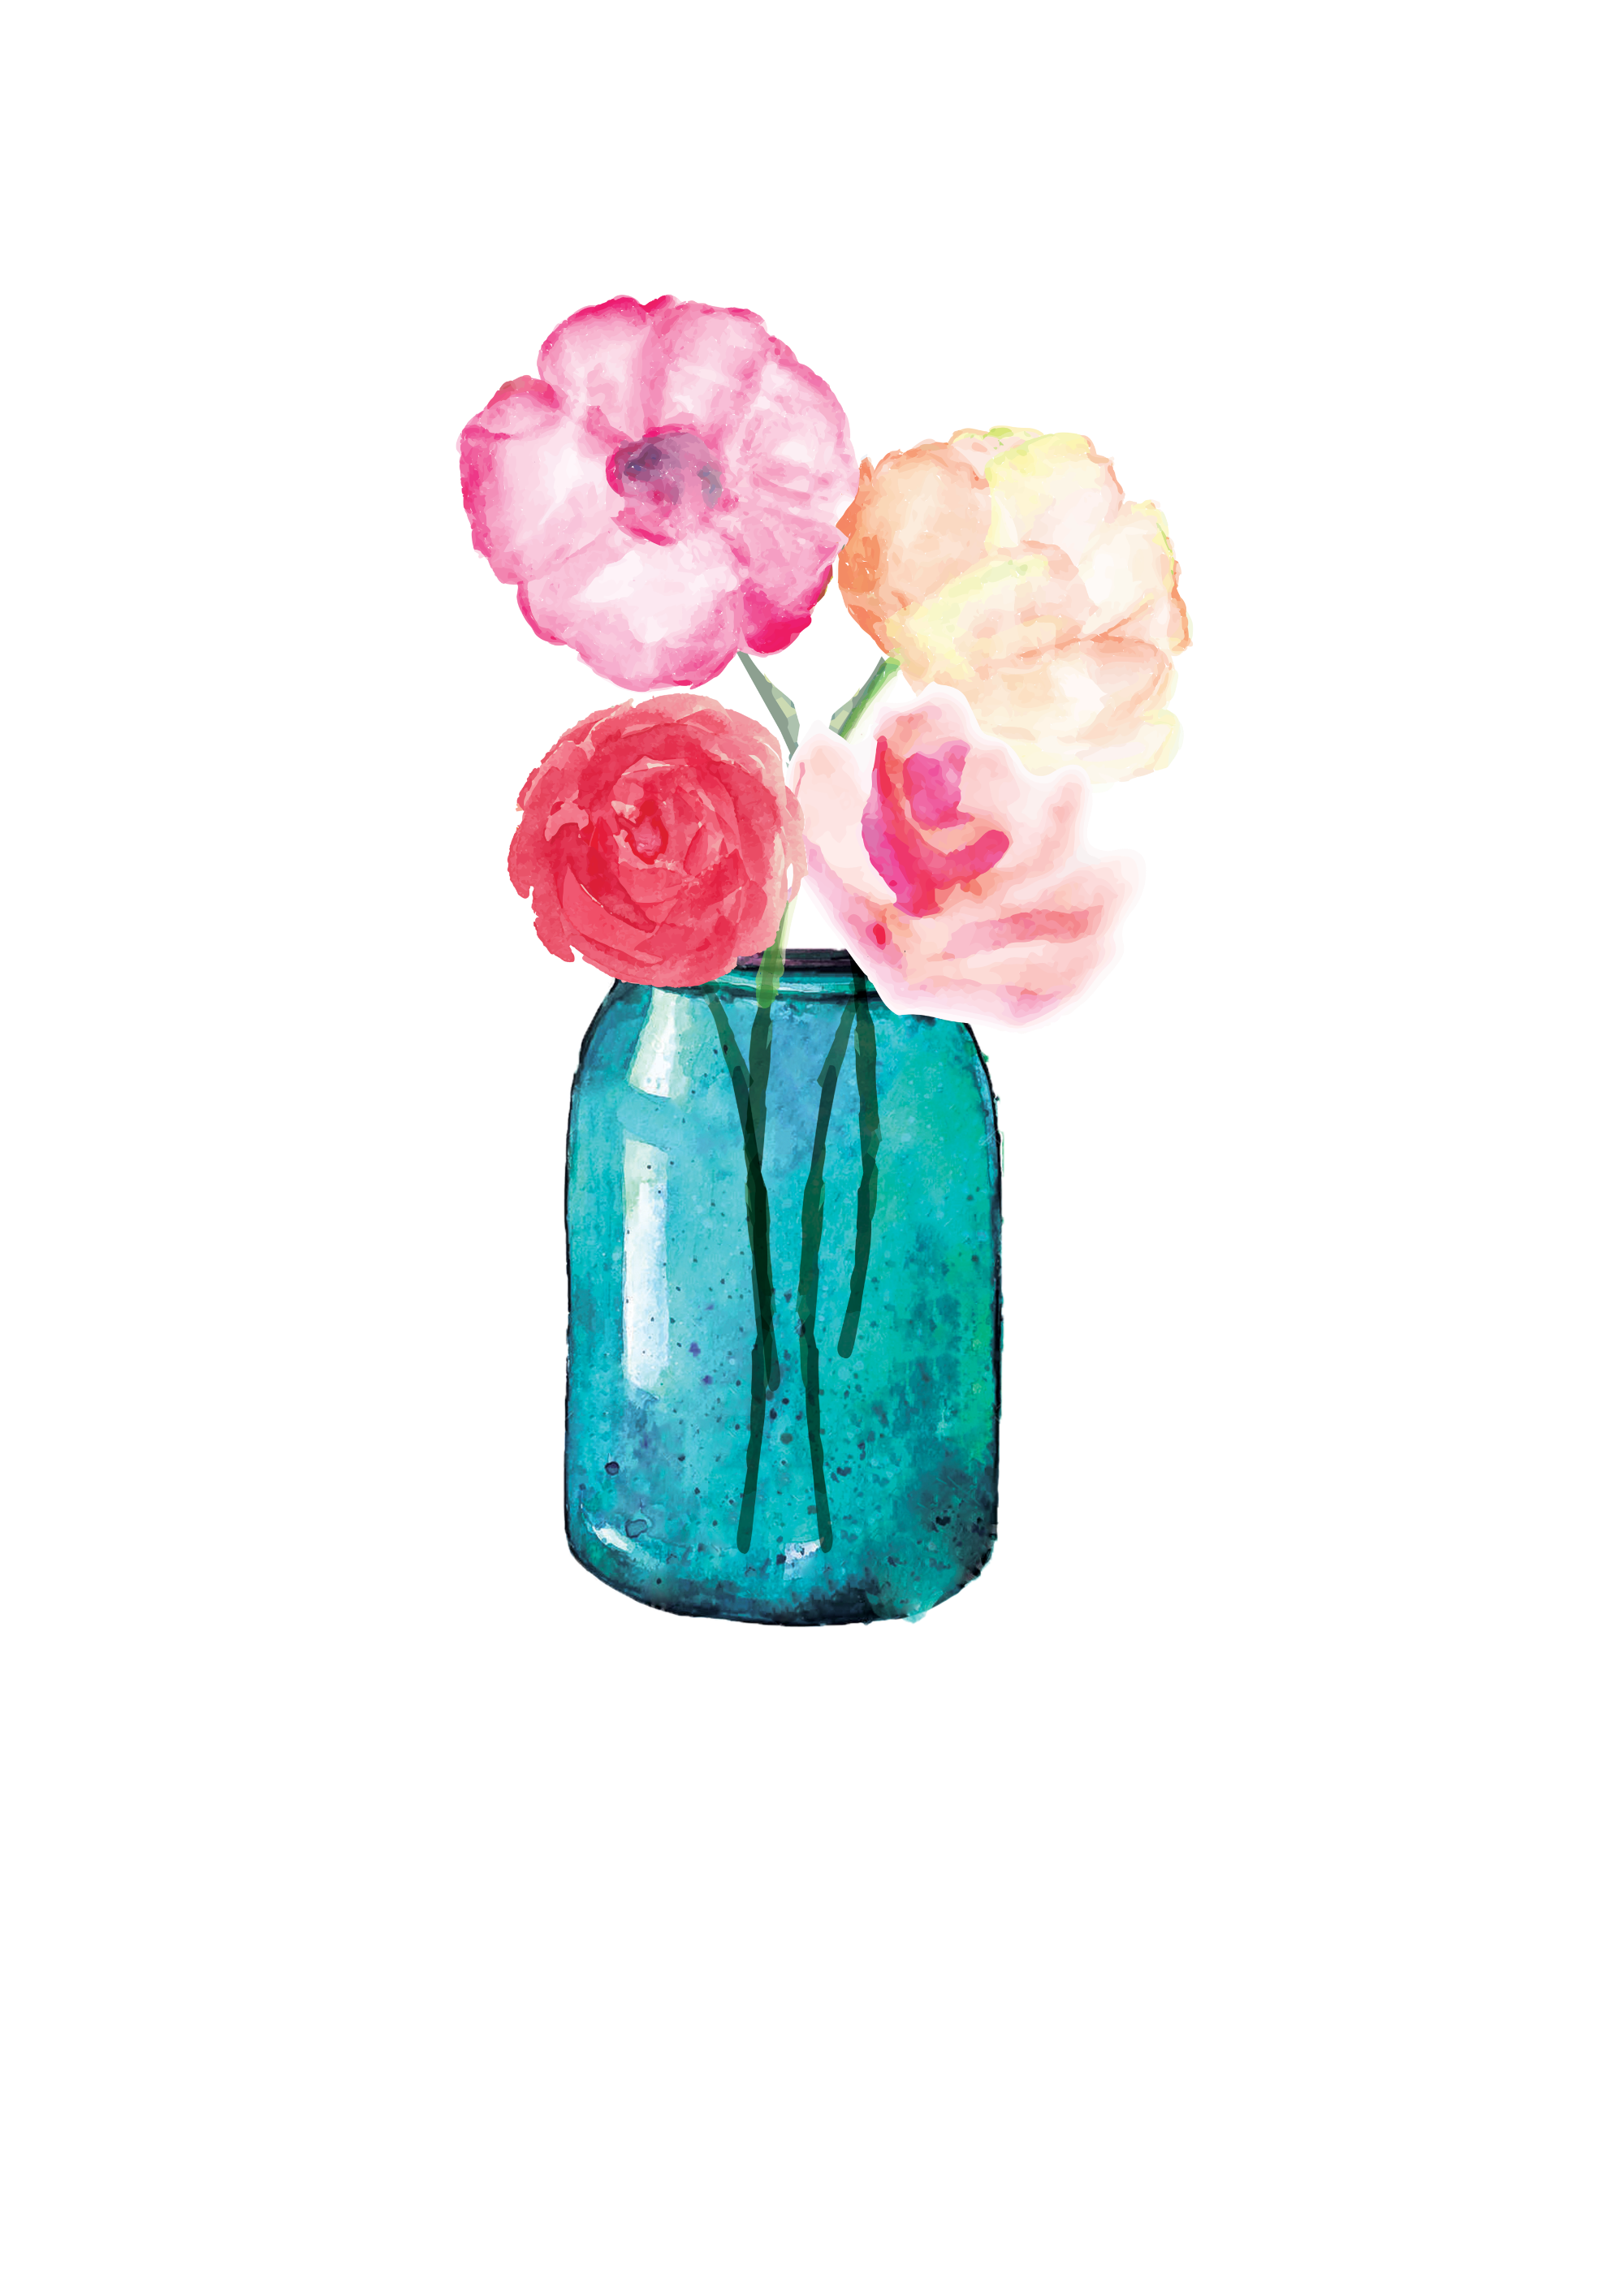 Lauren Baxter Flowers In A Mason Jar Plants Pinterest Jar And Watercolor